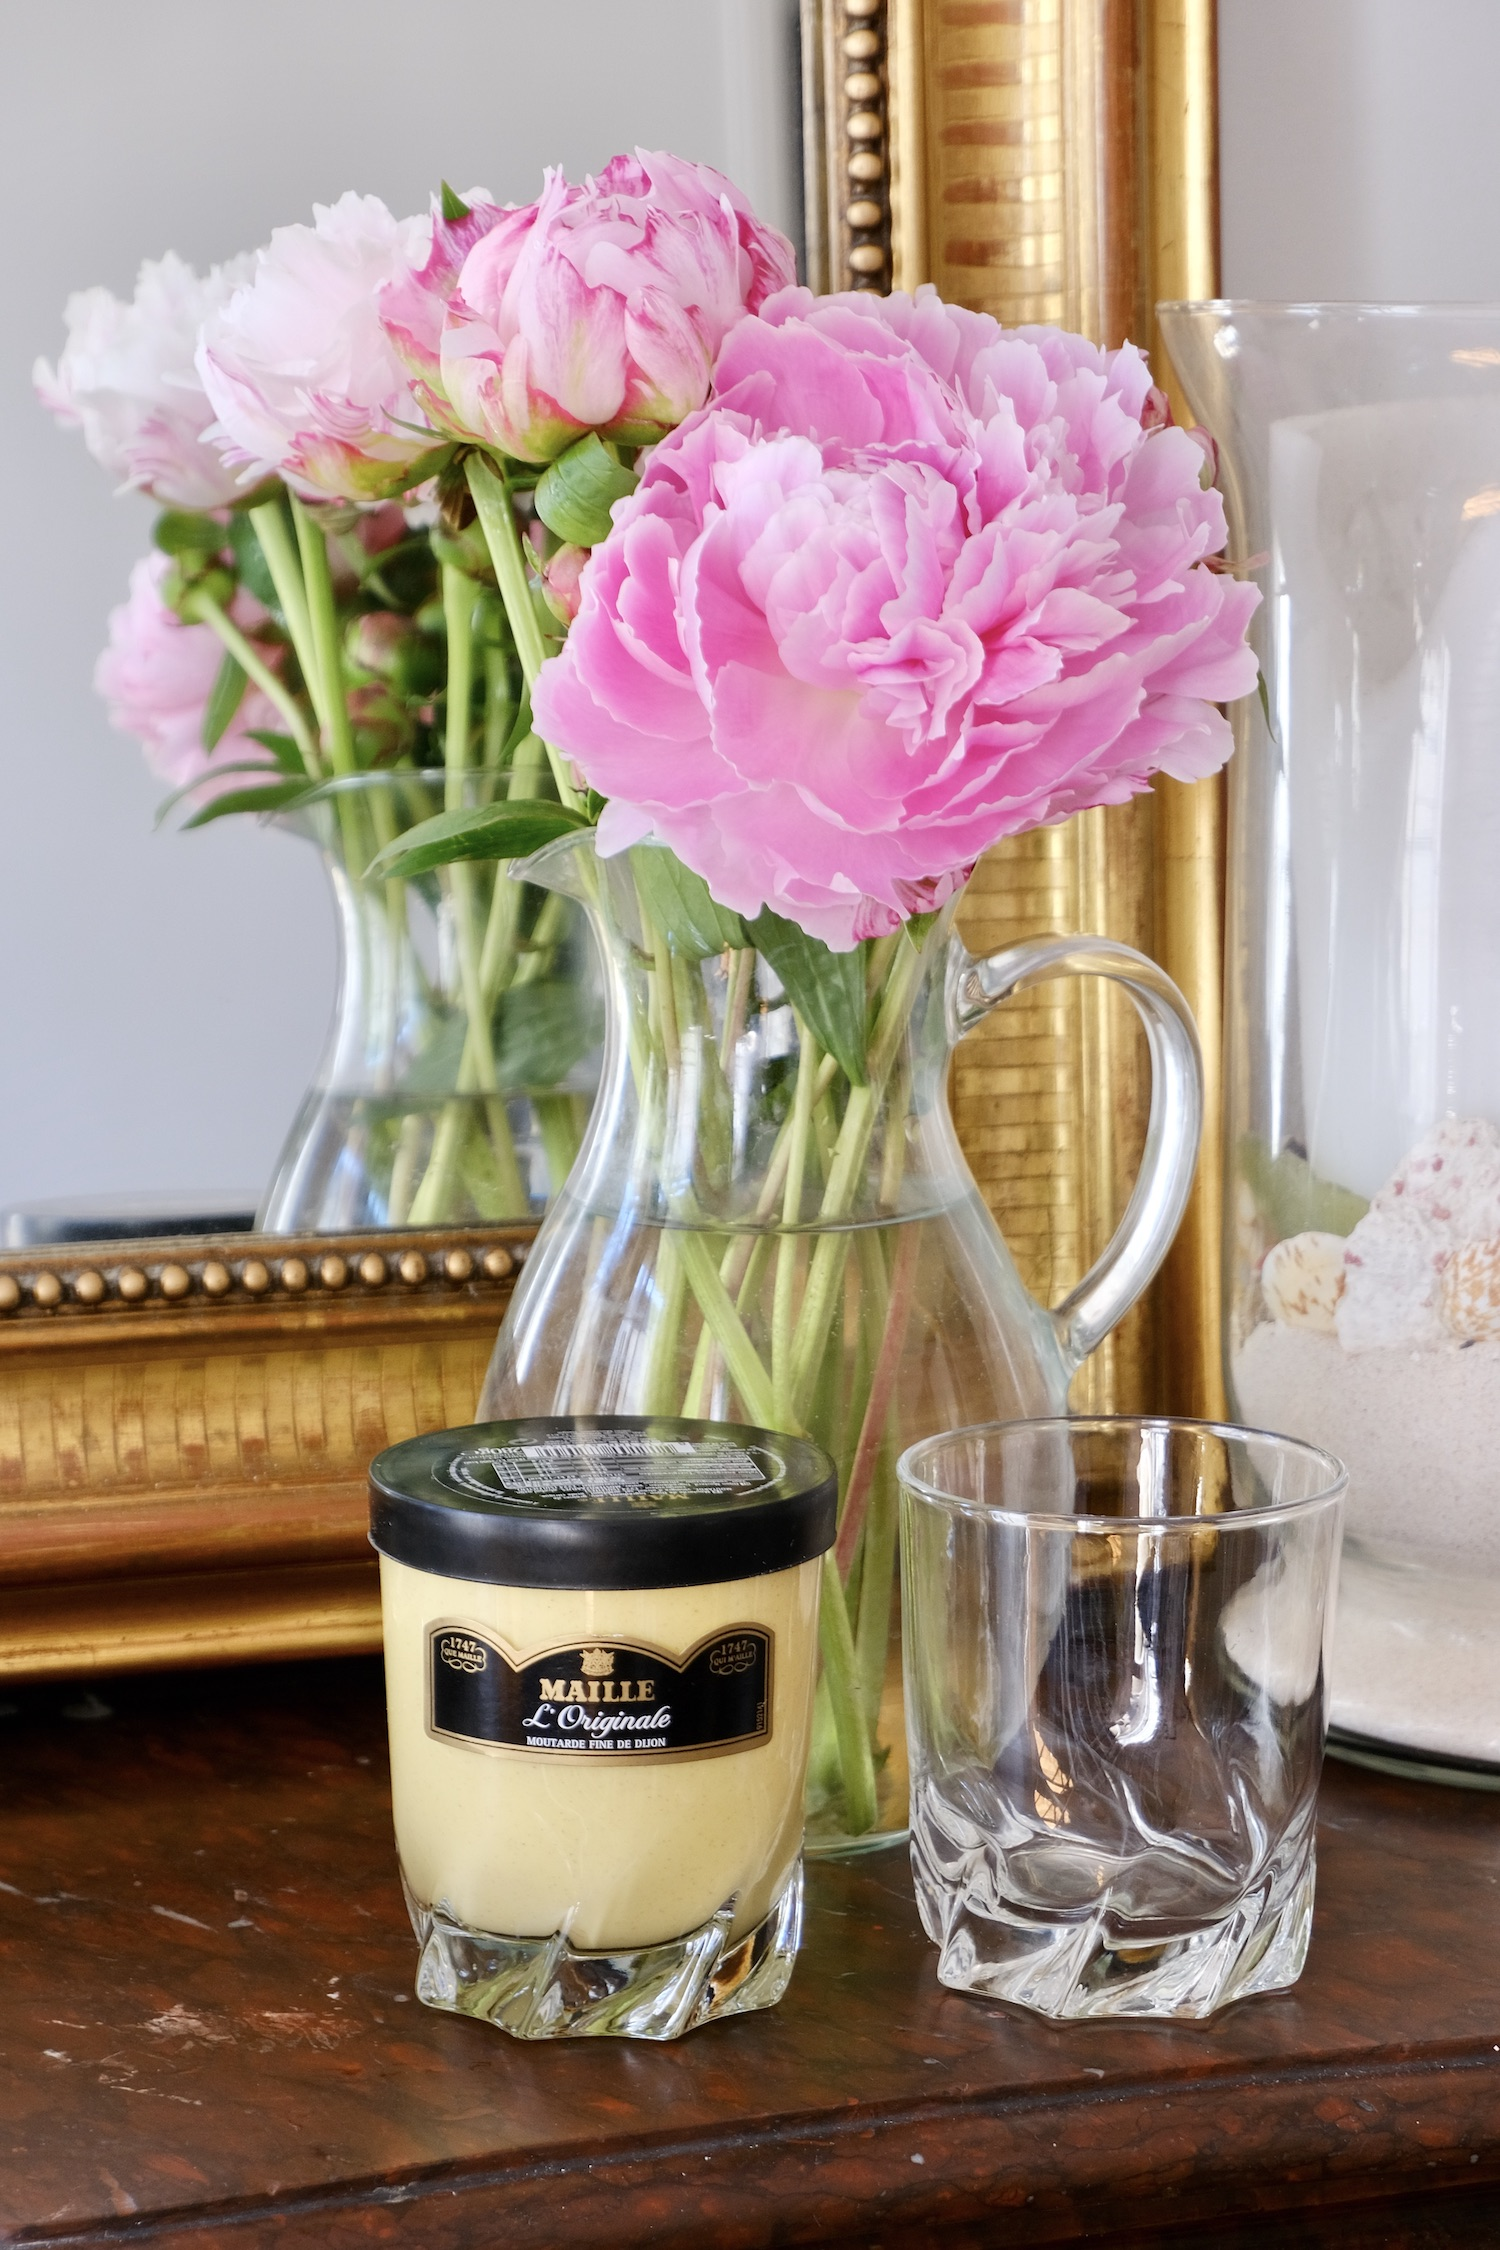 French mustard jars as glassware